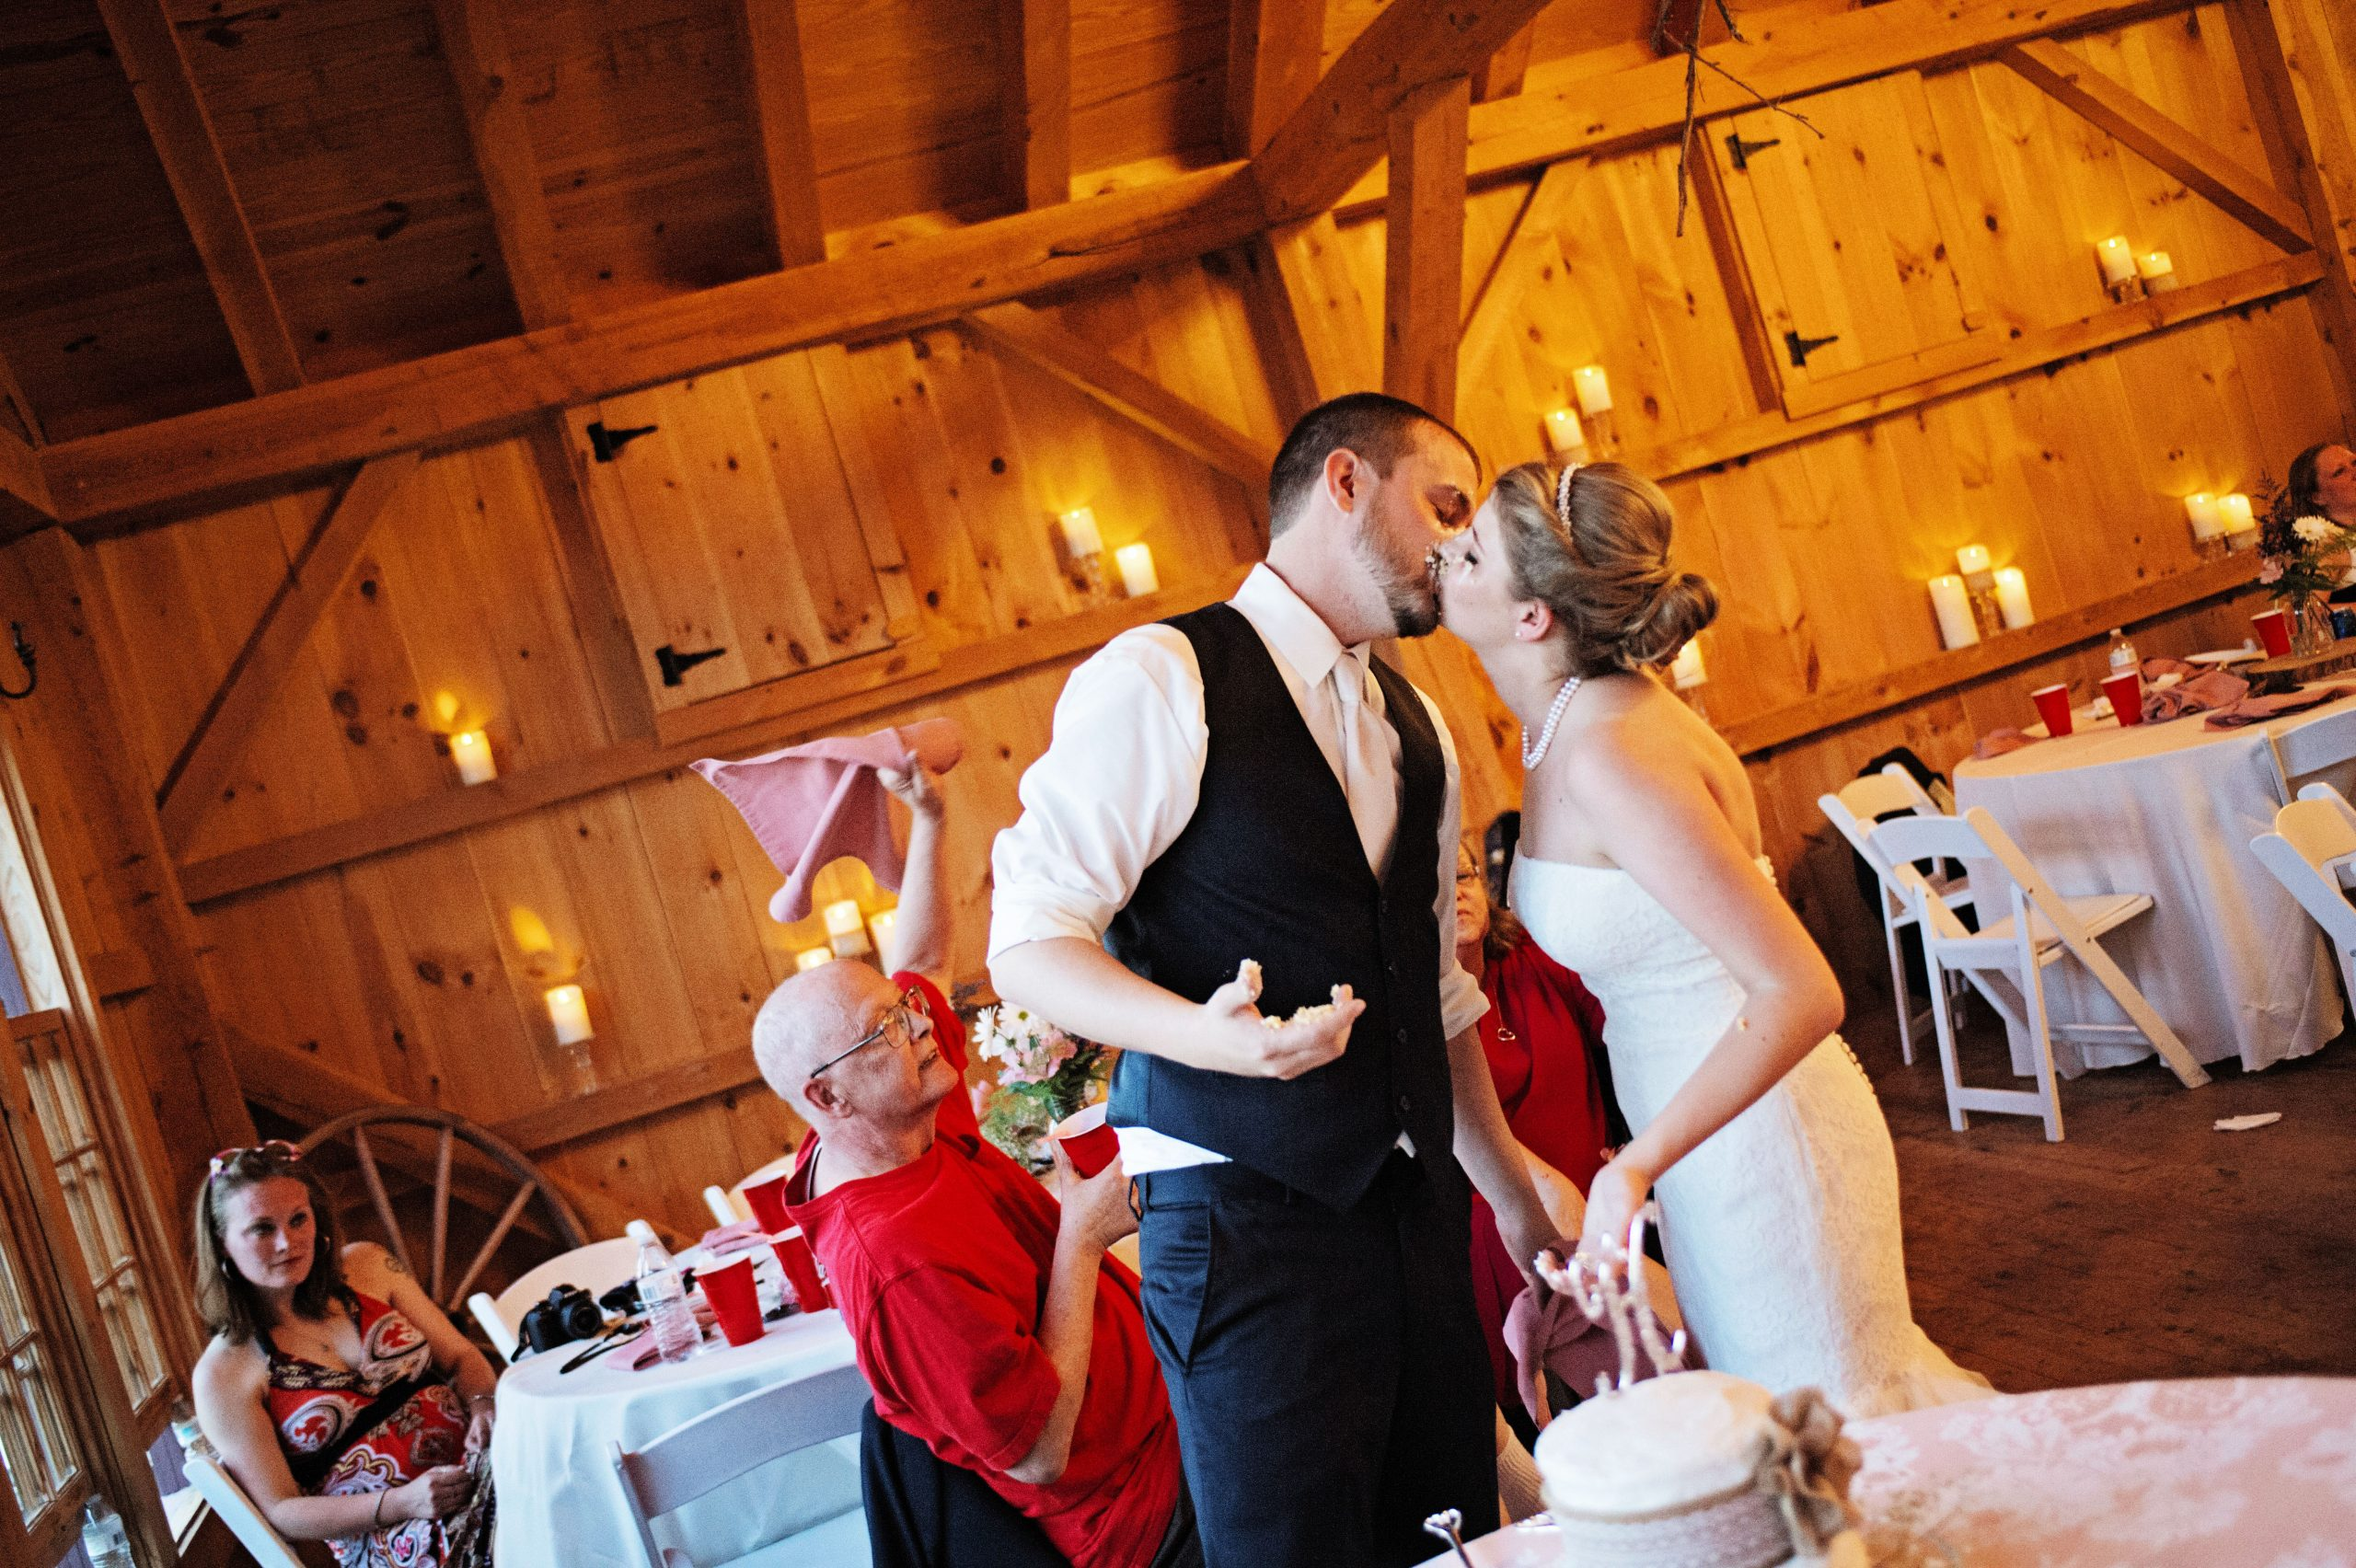 Smashed wedding cake is just as good as unsmashed wedding cake. The loving couple share a kiss at Lakeview Farms in York, PA. Photo captured by Lovefusion Photography. Featured on Dream Weddings.